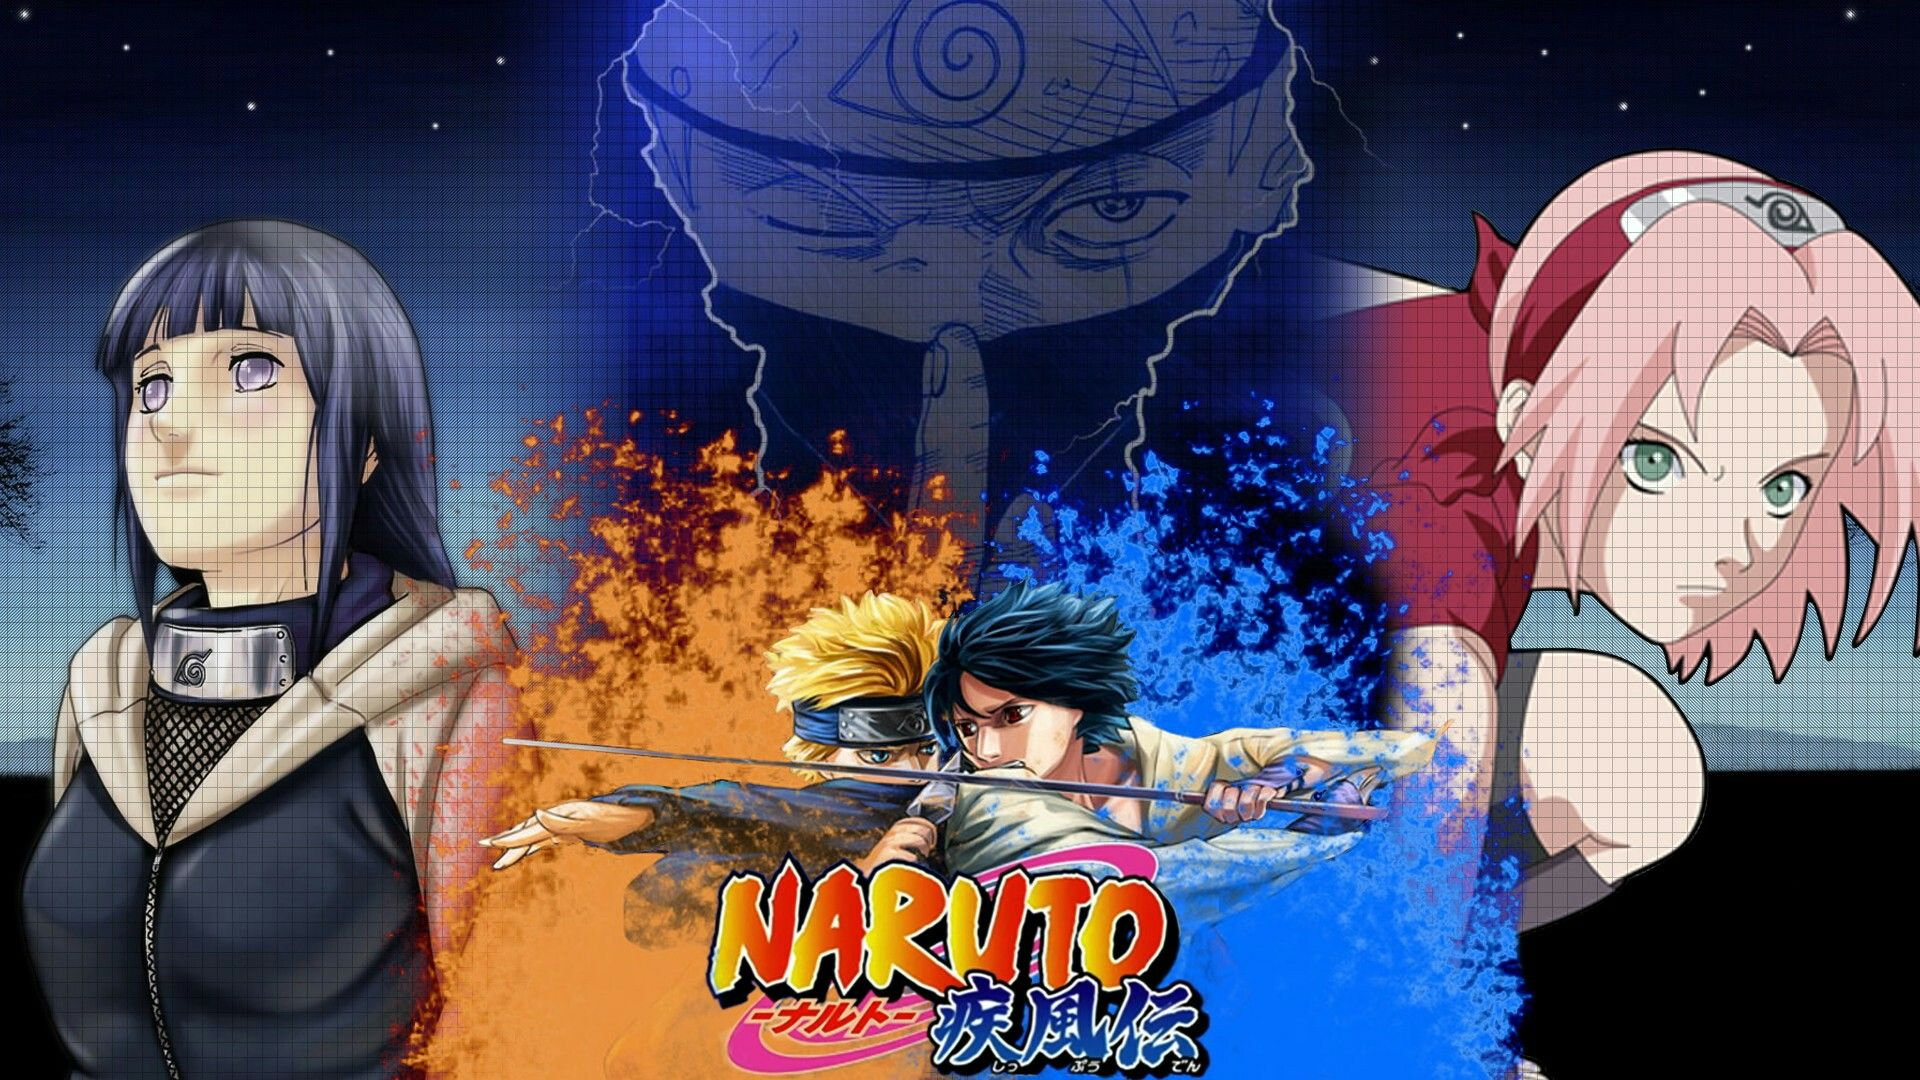 4k Naruto Wallpapers Top Free 4k Naruto Backgrounds